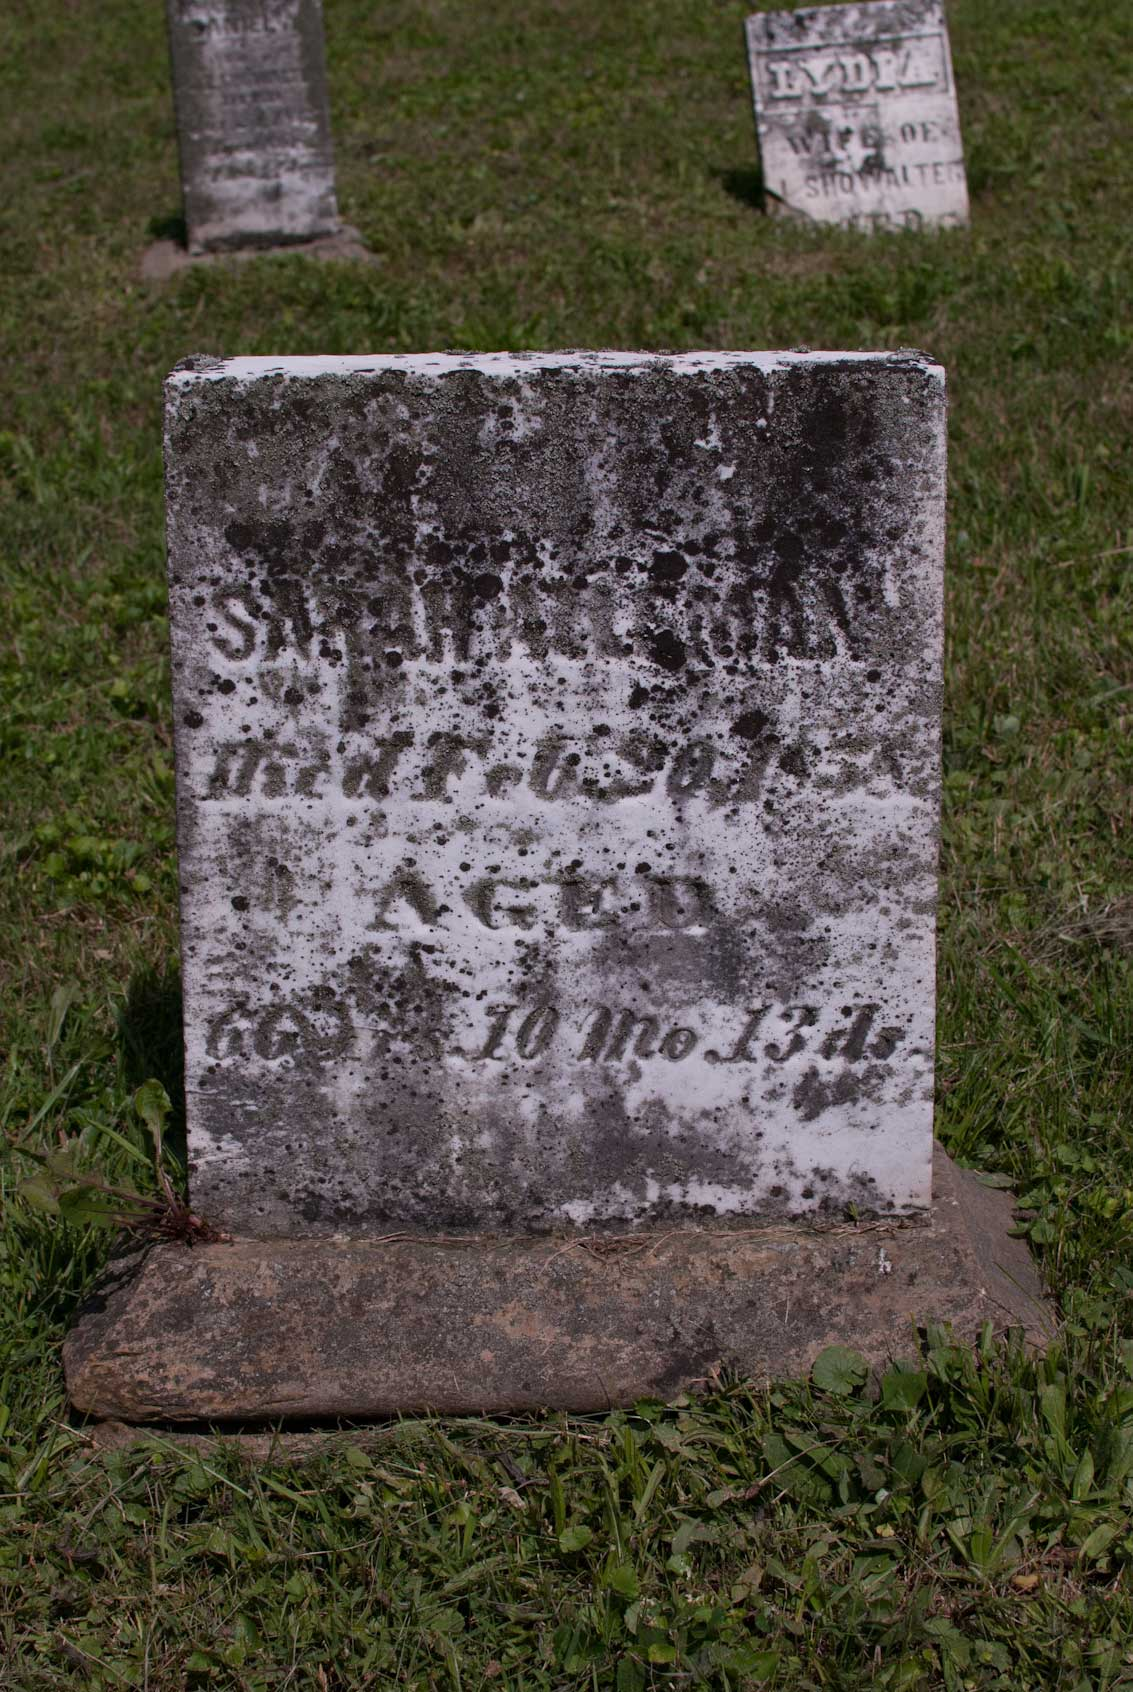 Sarah Alleman, died Feb. 20, 1858 - AGED - 66 yrs. 10 mo. 13 ds.